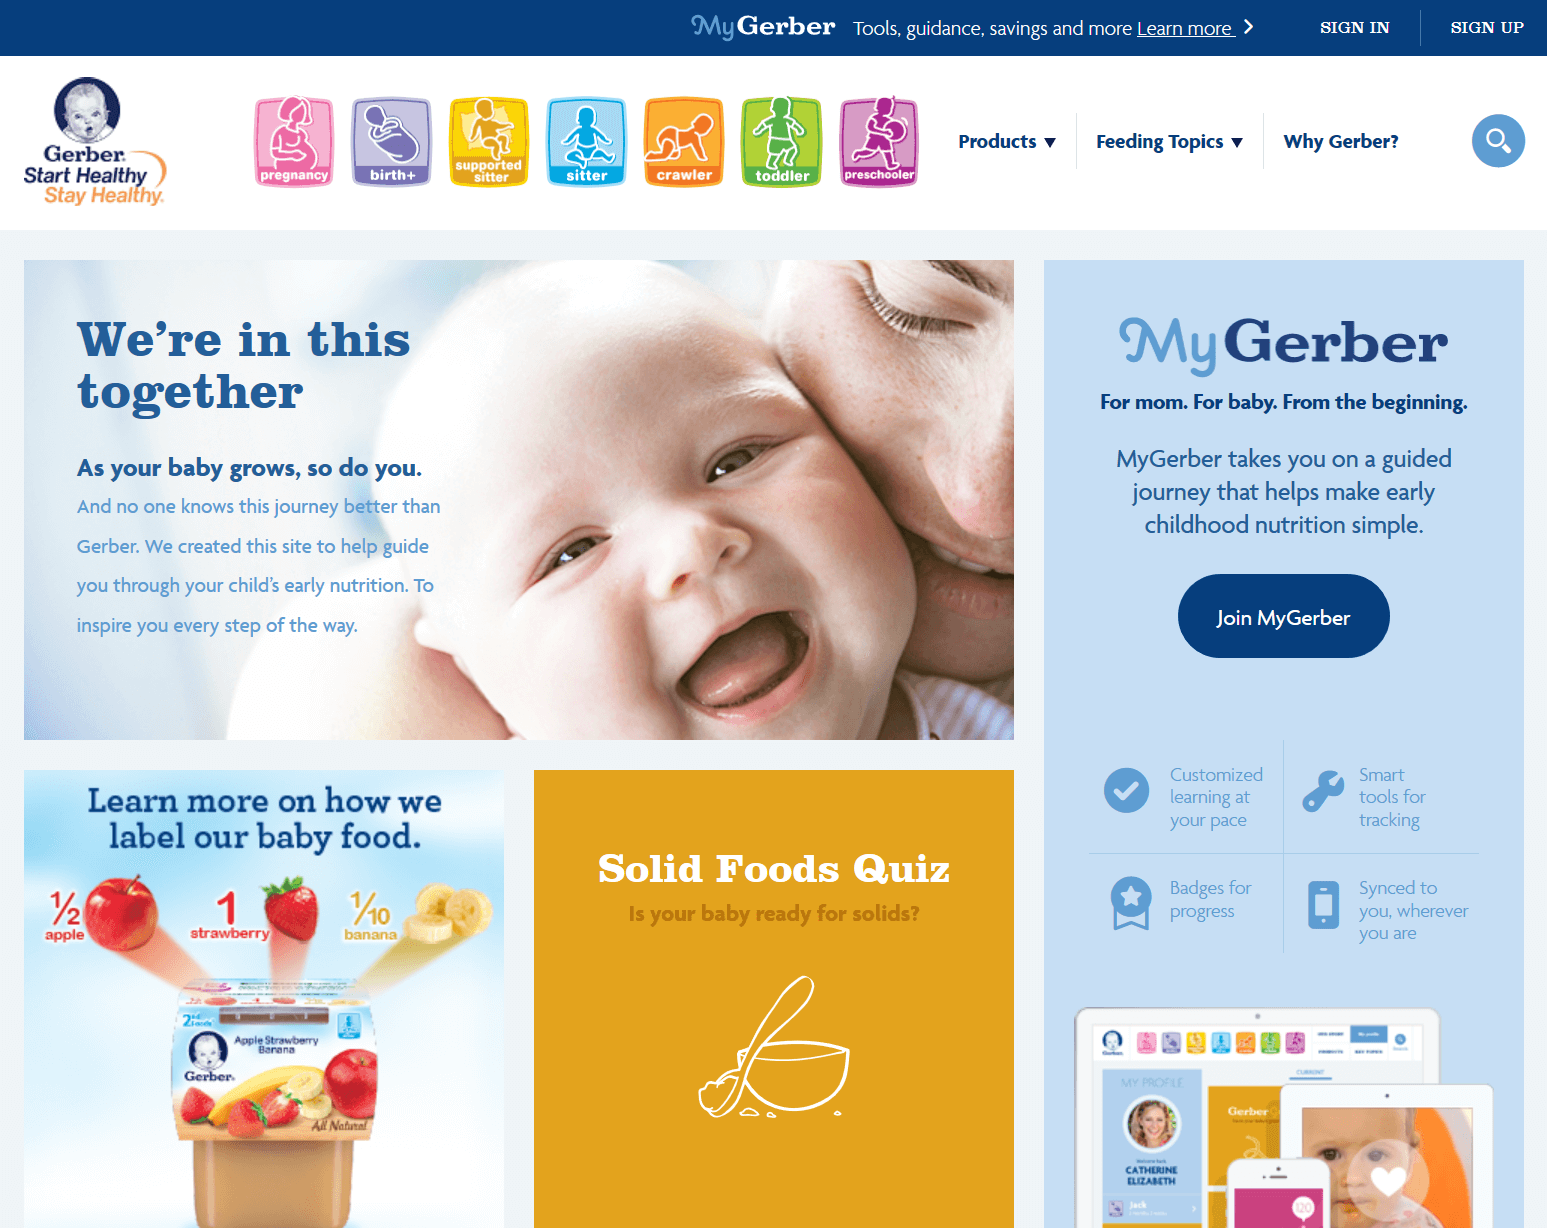 Image of the MyGerber.com website home page.